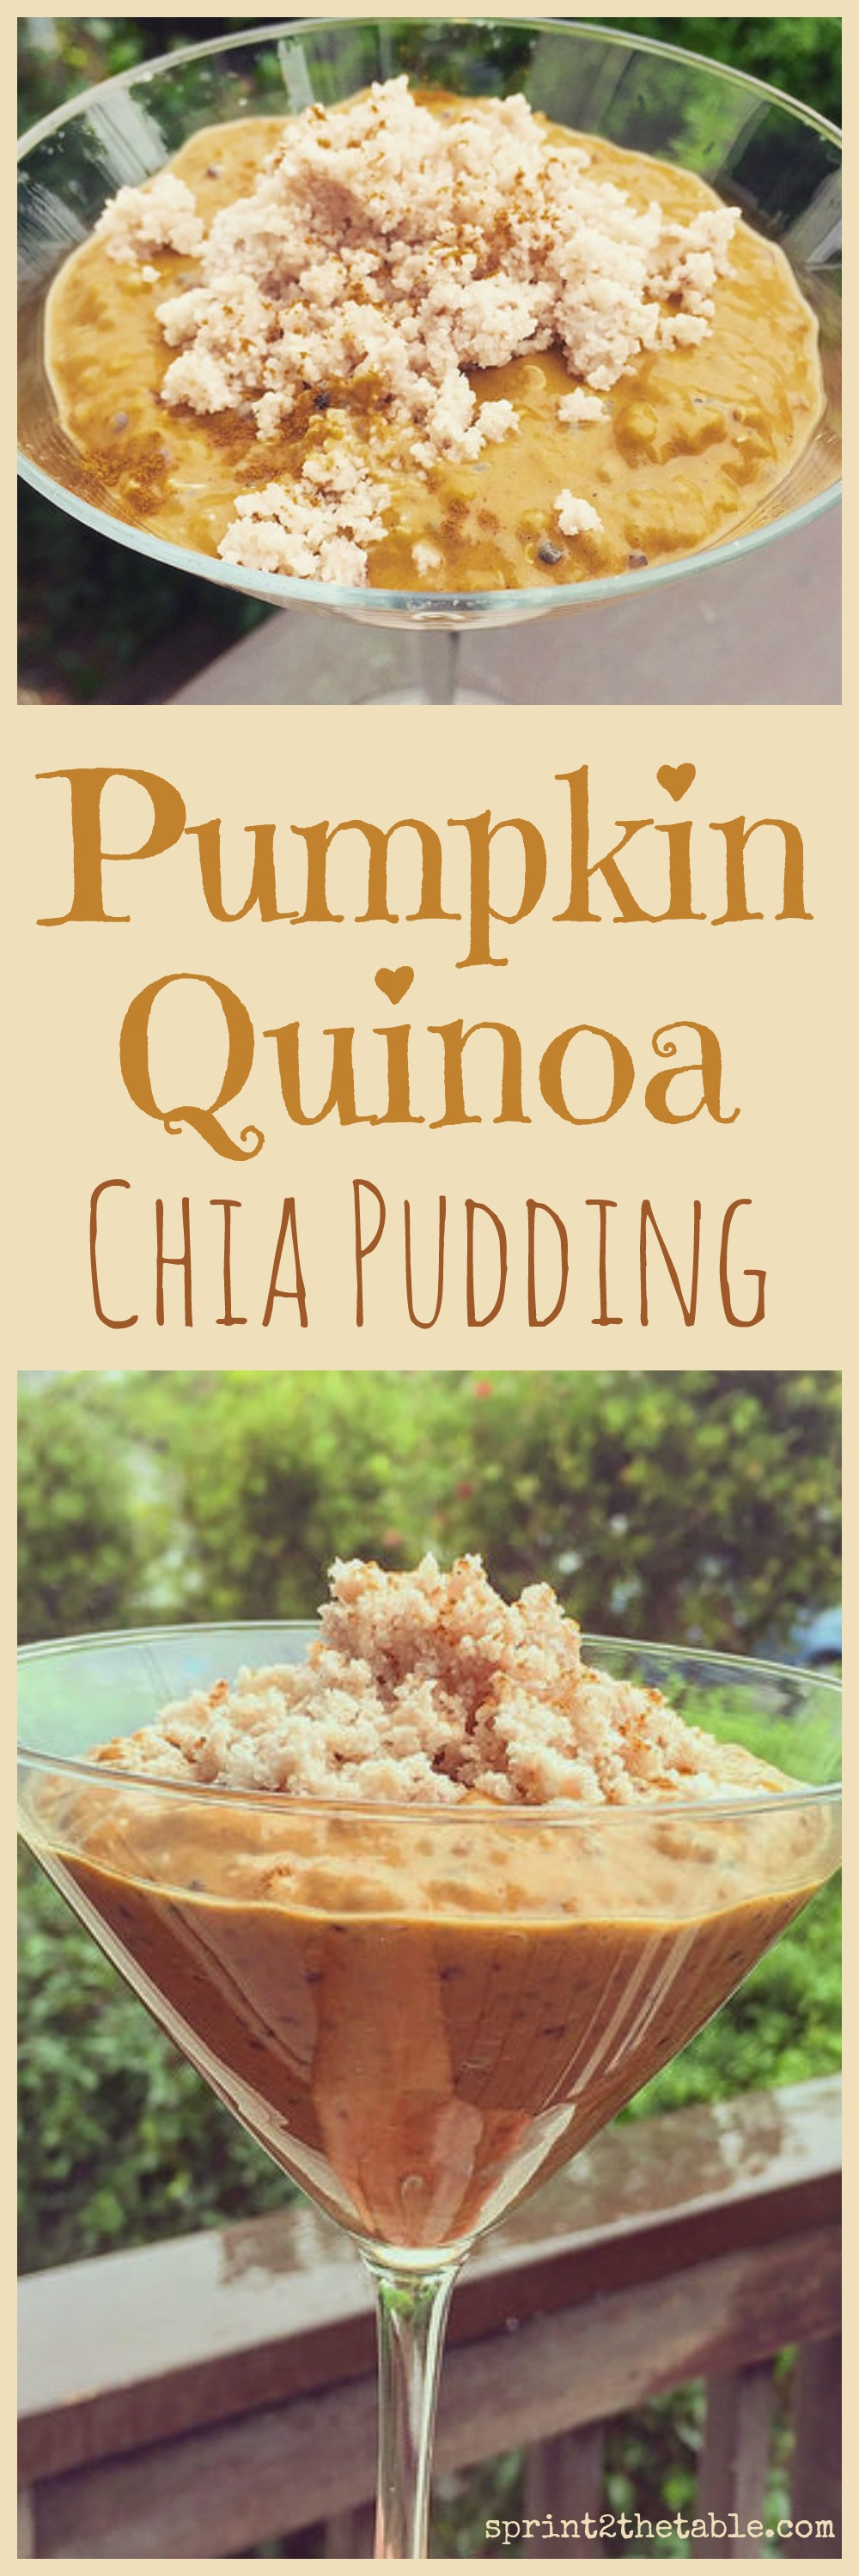 Pumpkin Quinoa Chia Pudding Halloween Recipe